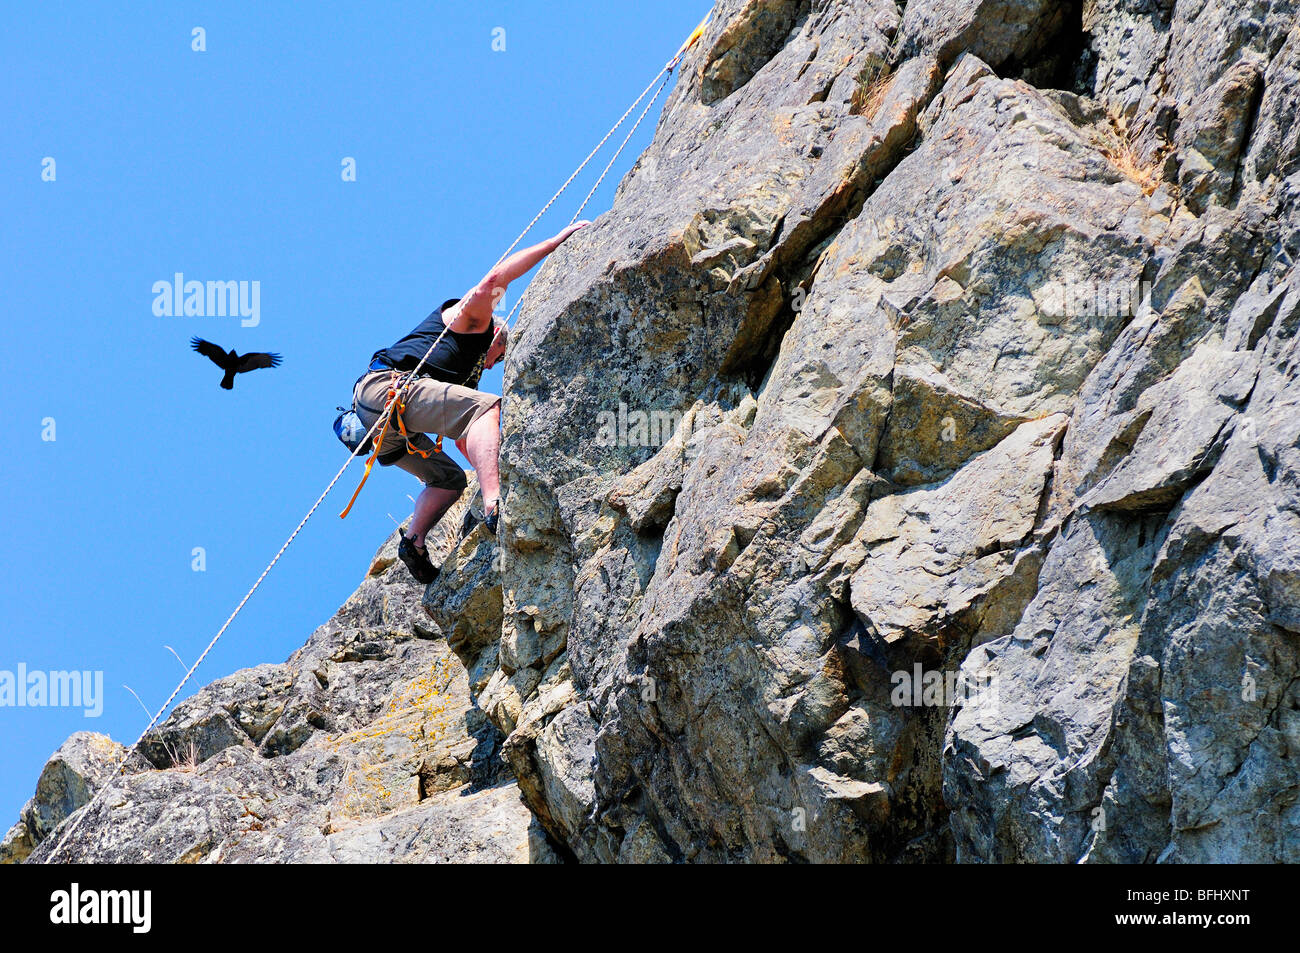 Rock climbing with a crow soaring overhead at McCauley Point Park in Victoria, BC. - Stock Image